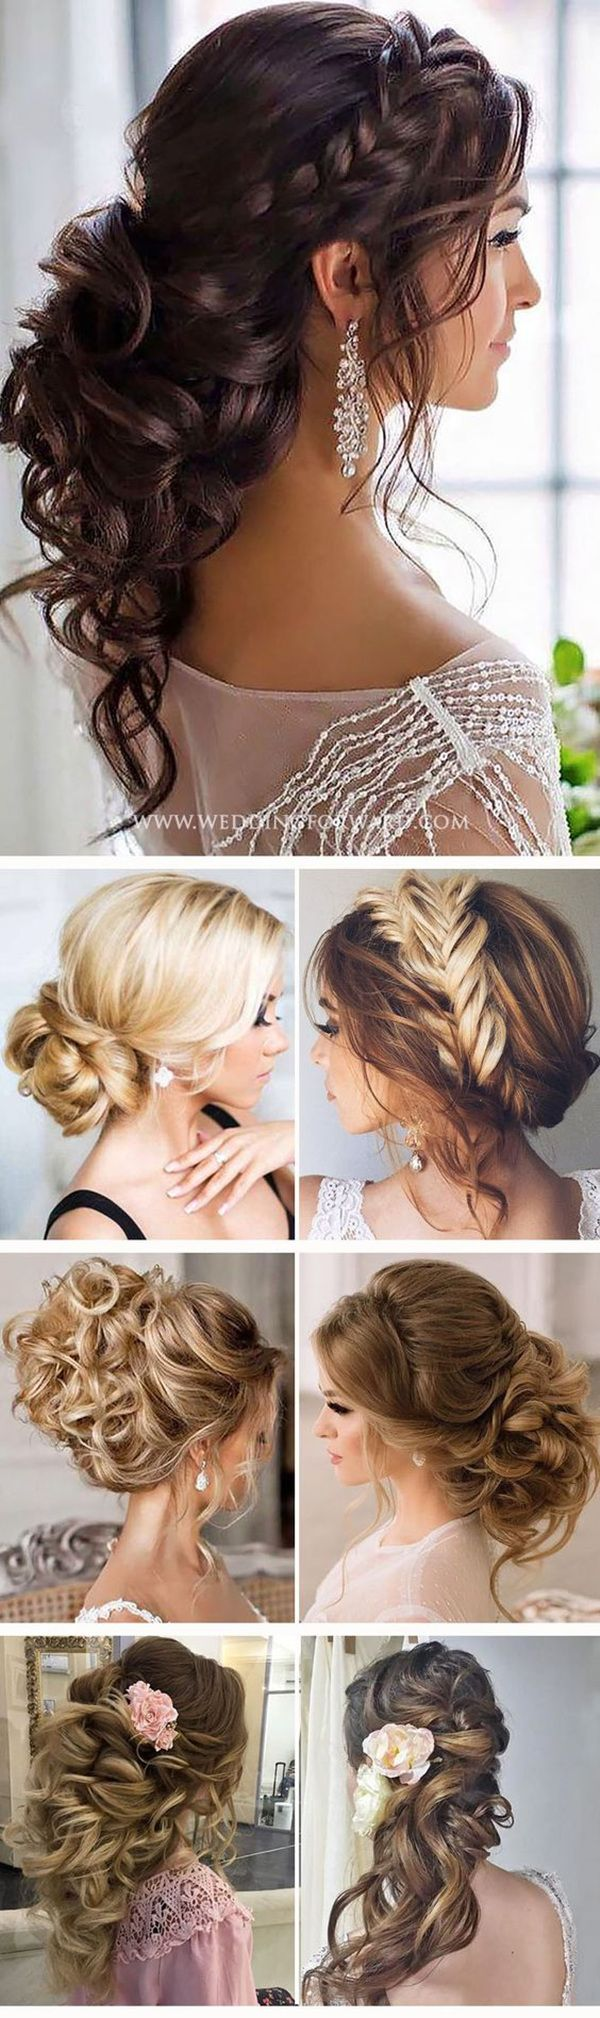 Top wedding hairstyles youull love for trends wedding